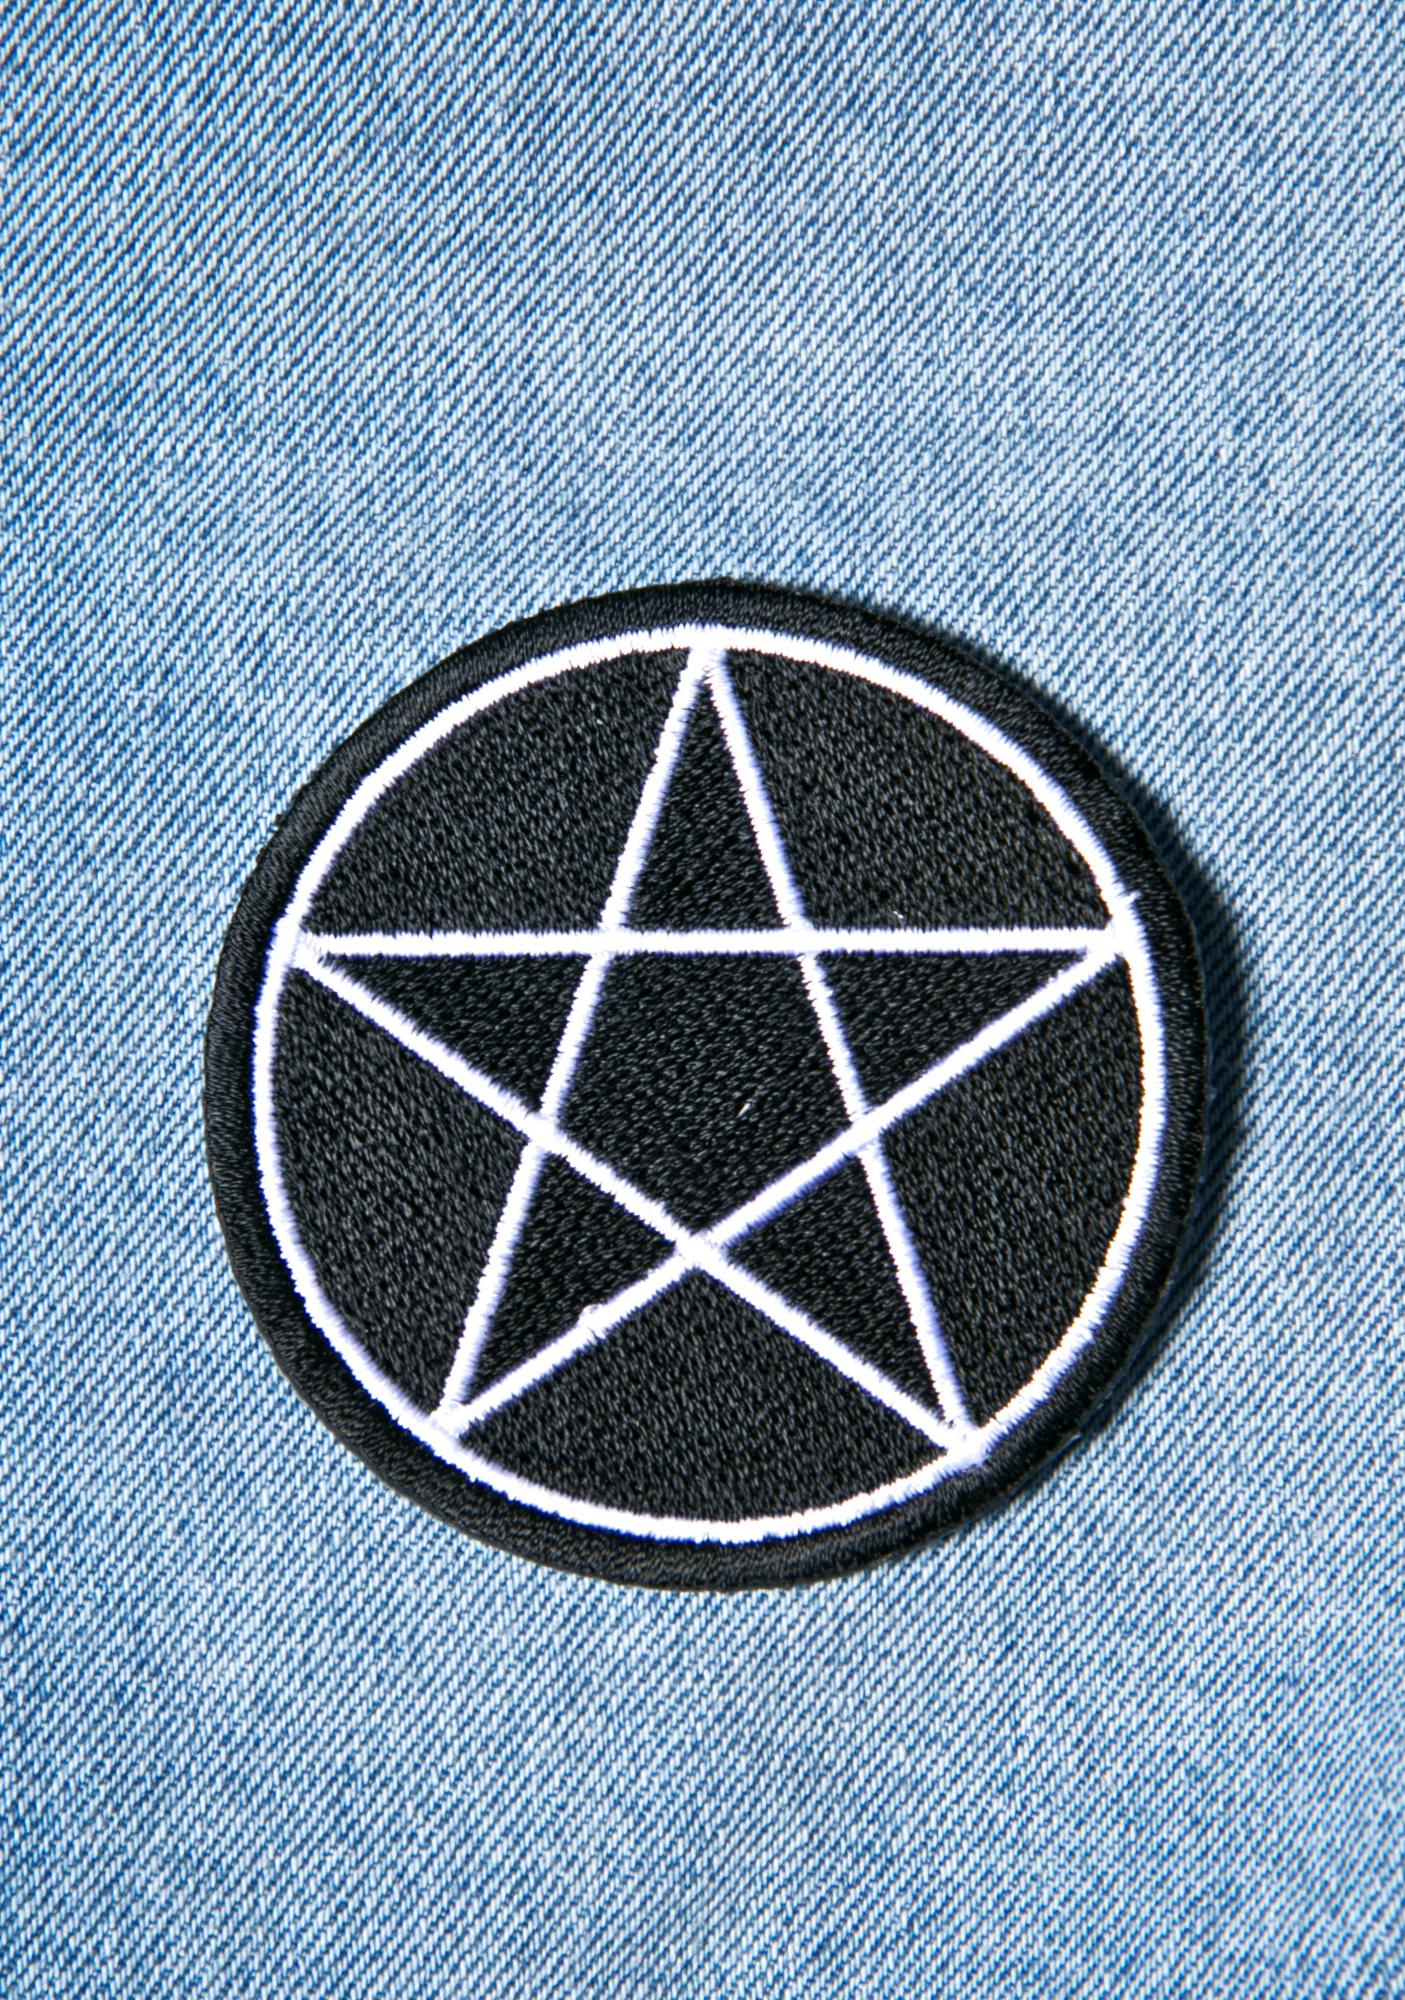 Occult Swag Patch